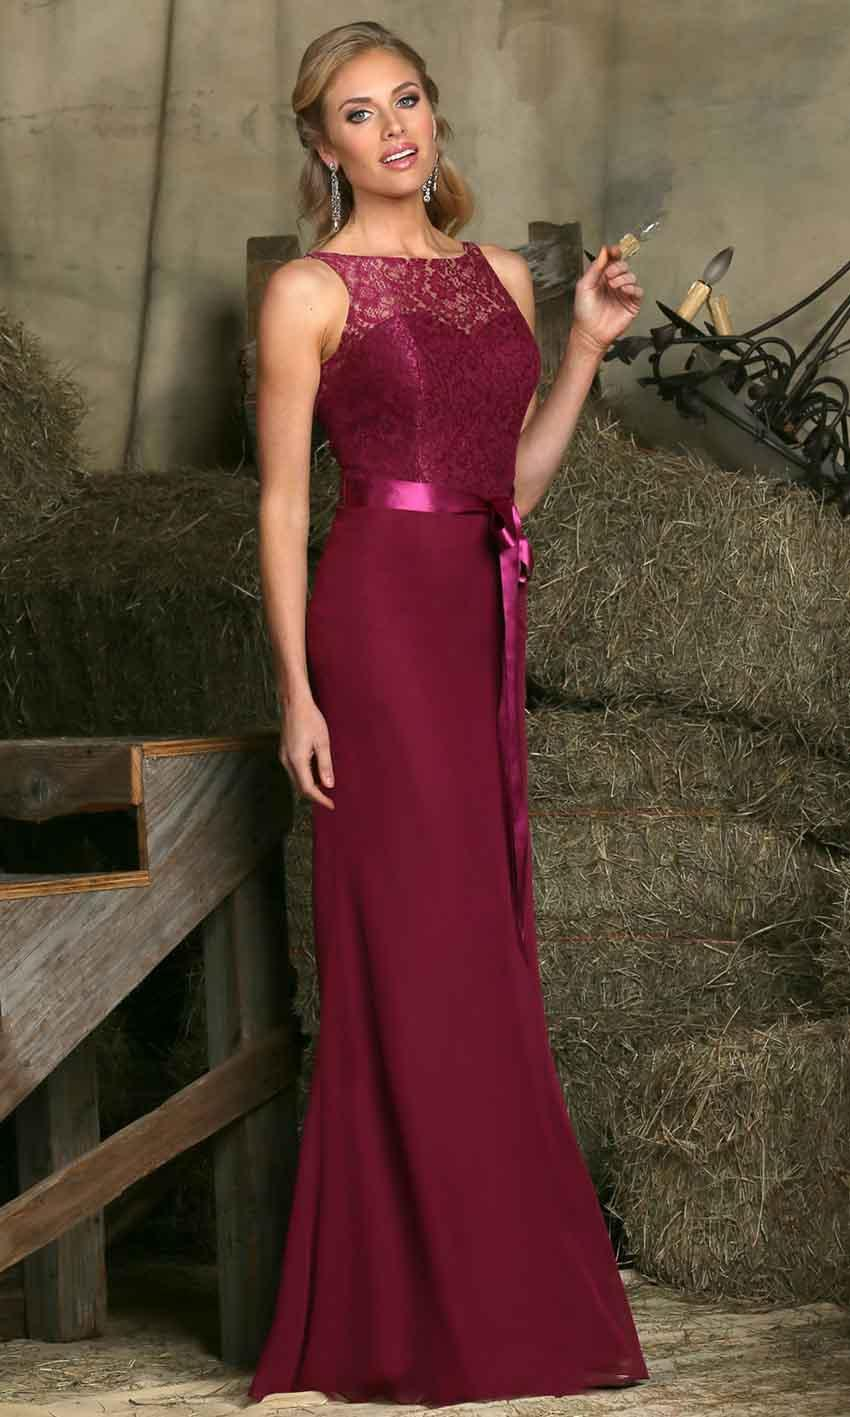 Elegant wine lace long mermaid bridesmaid dress ksp402 ksp402 elegant wine lace long mermaid bridesmaid dress ksp402 ksp402 9700 cheap prom dresses uk bridesmaid dresses 2014 prom evening dresses ombrellifo Image collections